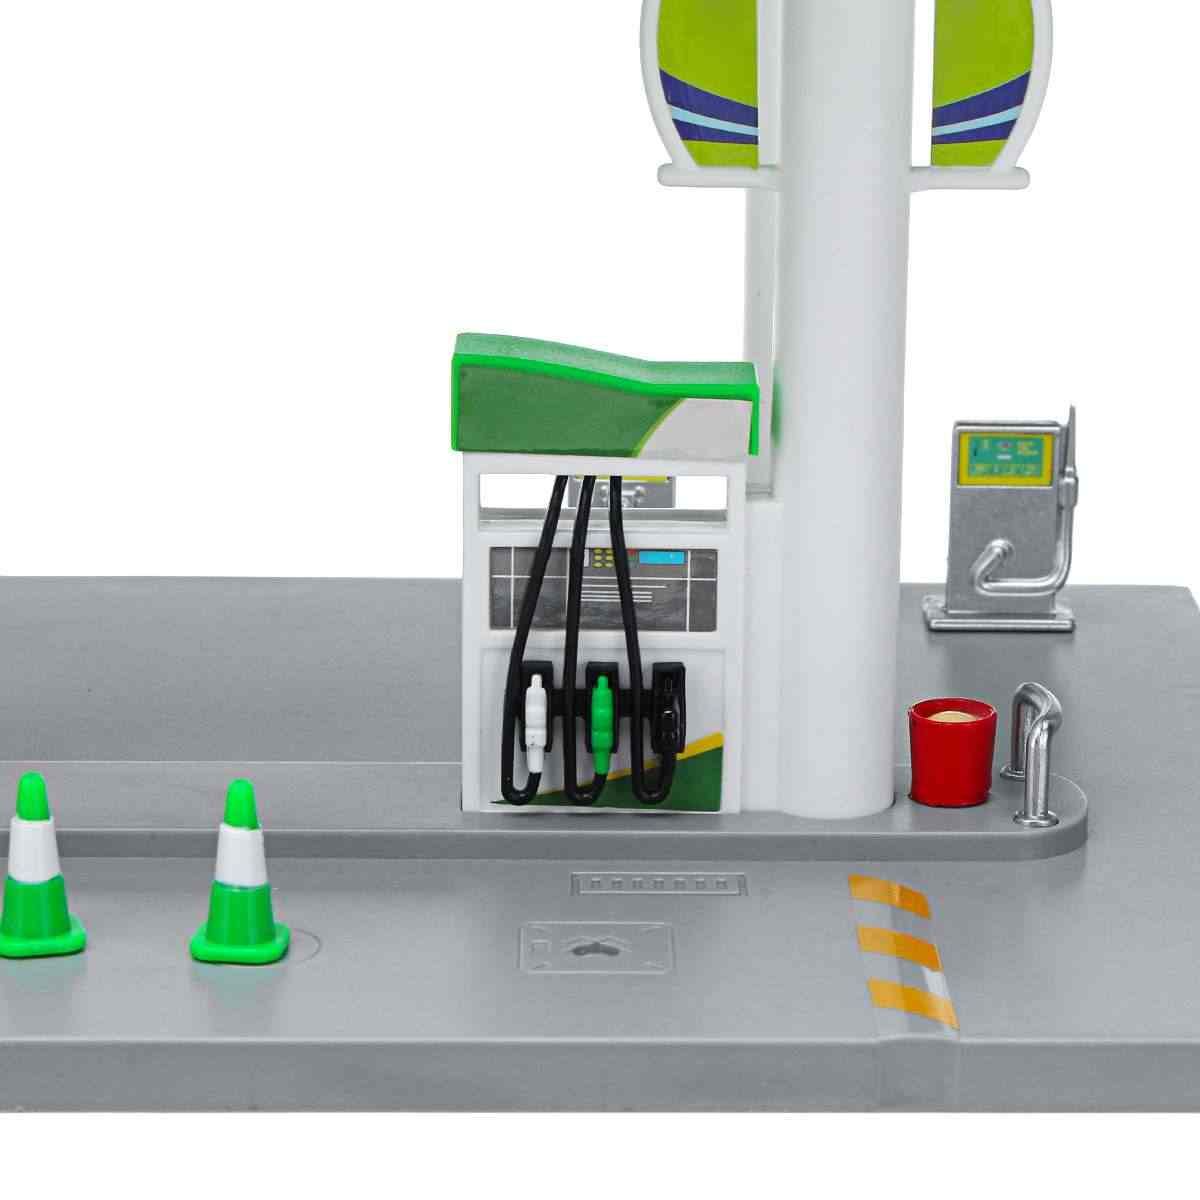 Model Toys Gas Petrol Service Station with 1:64 Diecast Toy Car Miniature Replica Playset